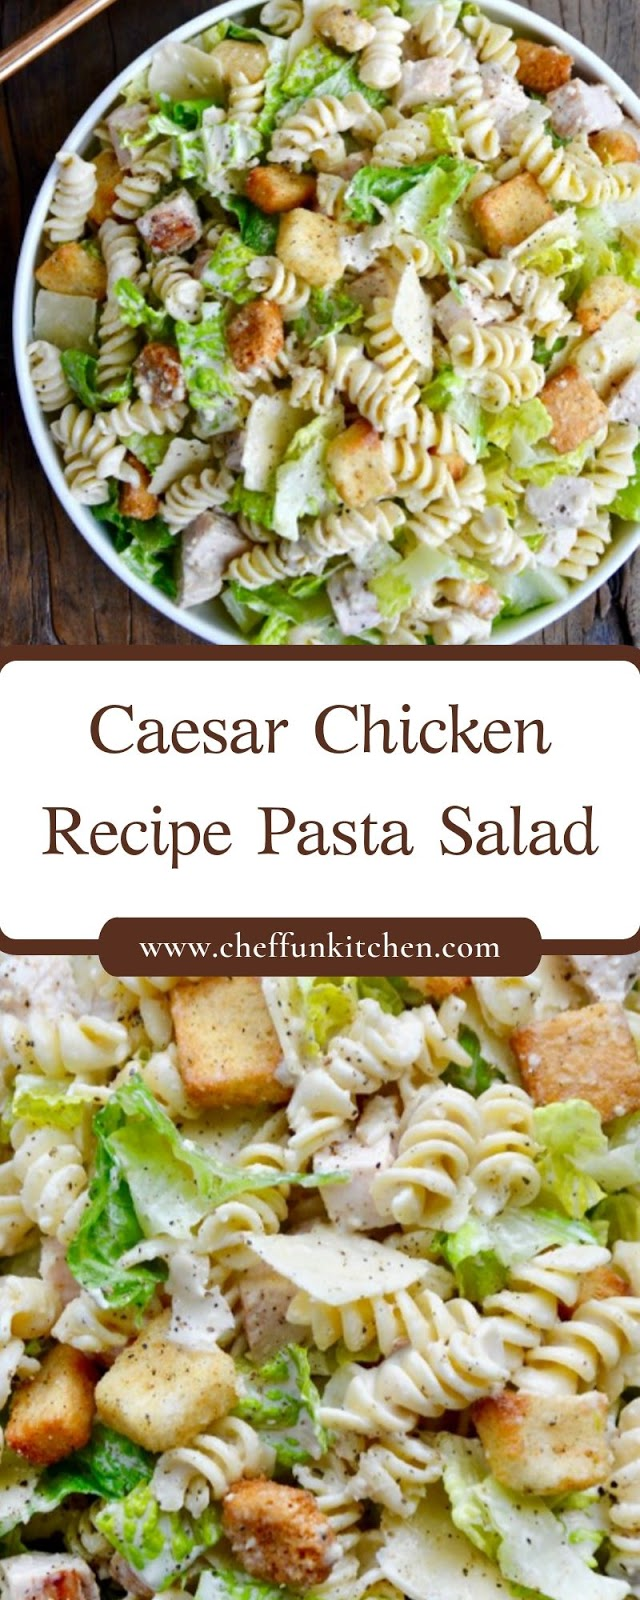 Caesar Chicken Recipe Pasta Salad